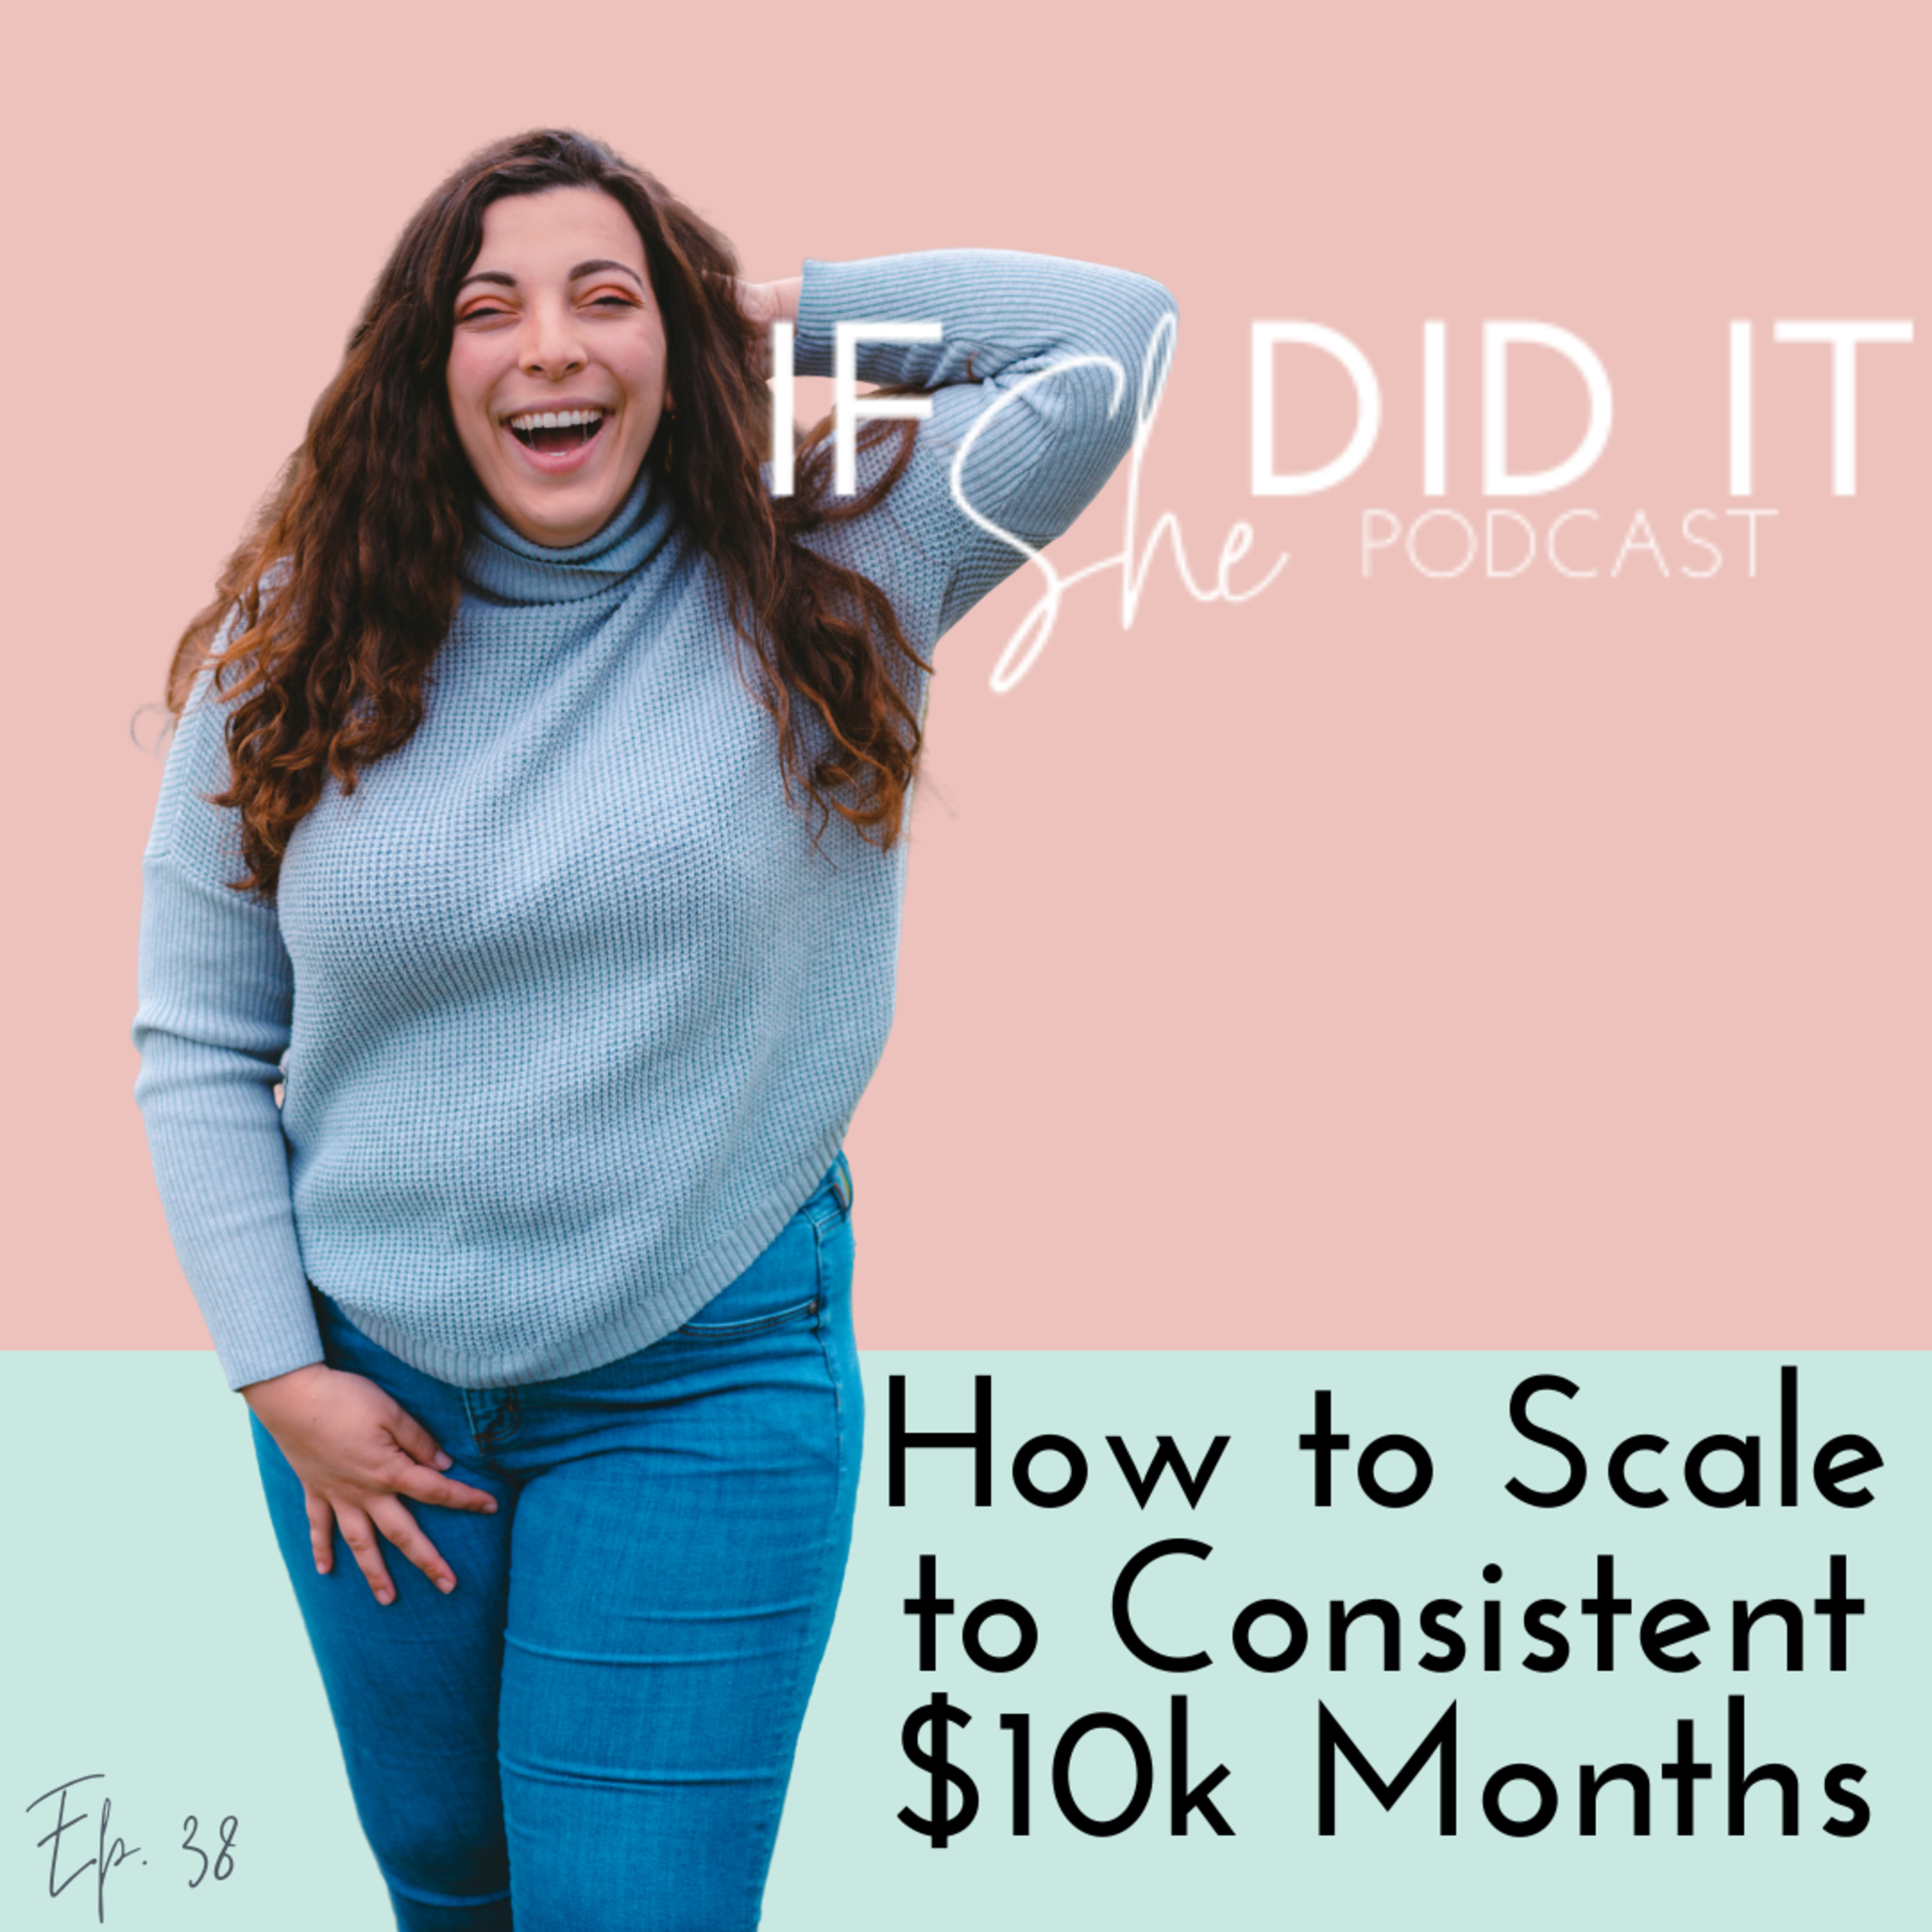 How to Scale to Consistent $10k Months